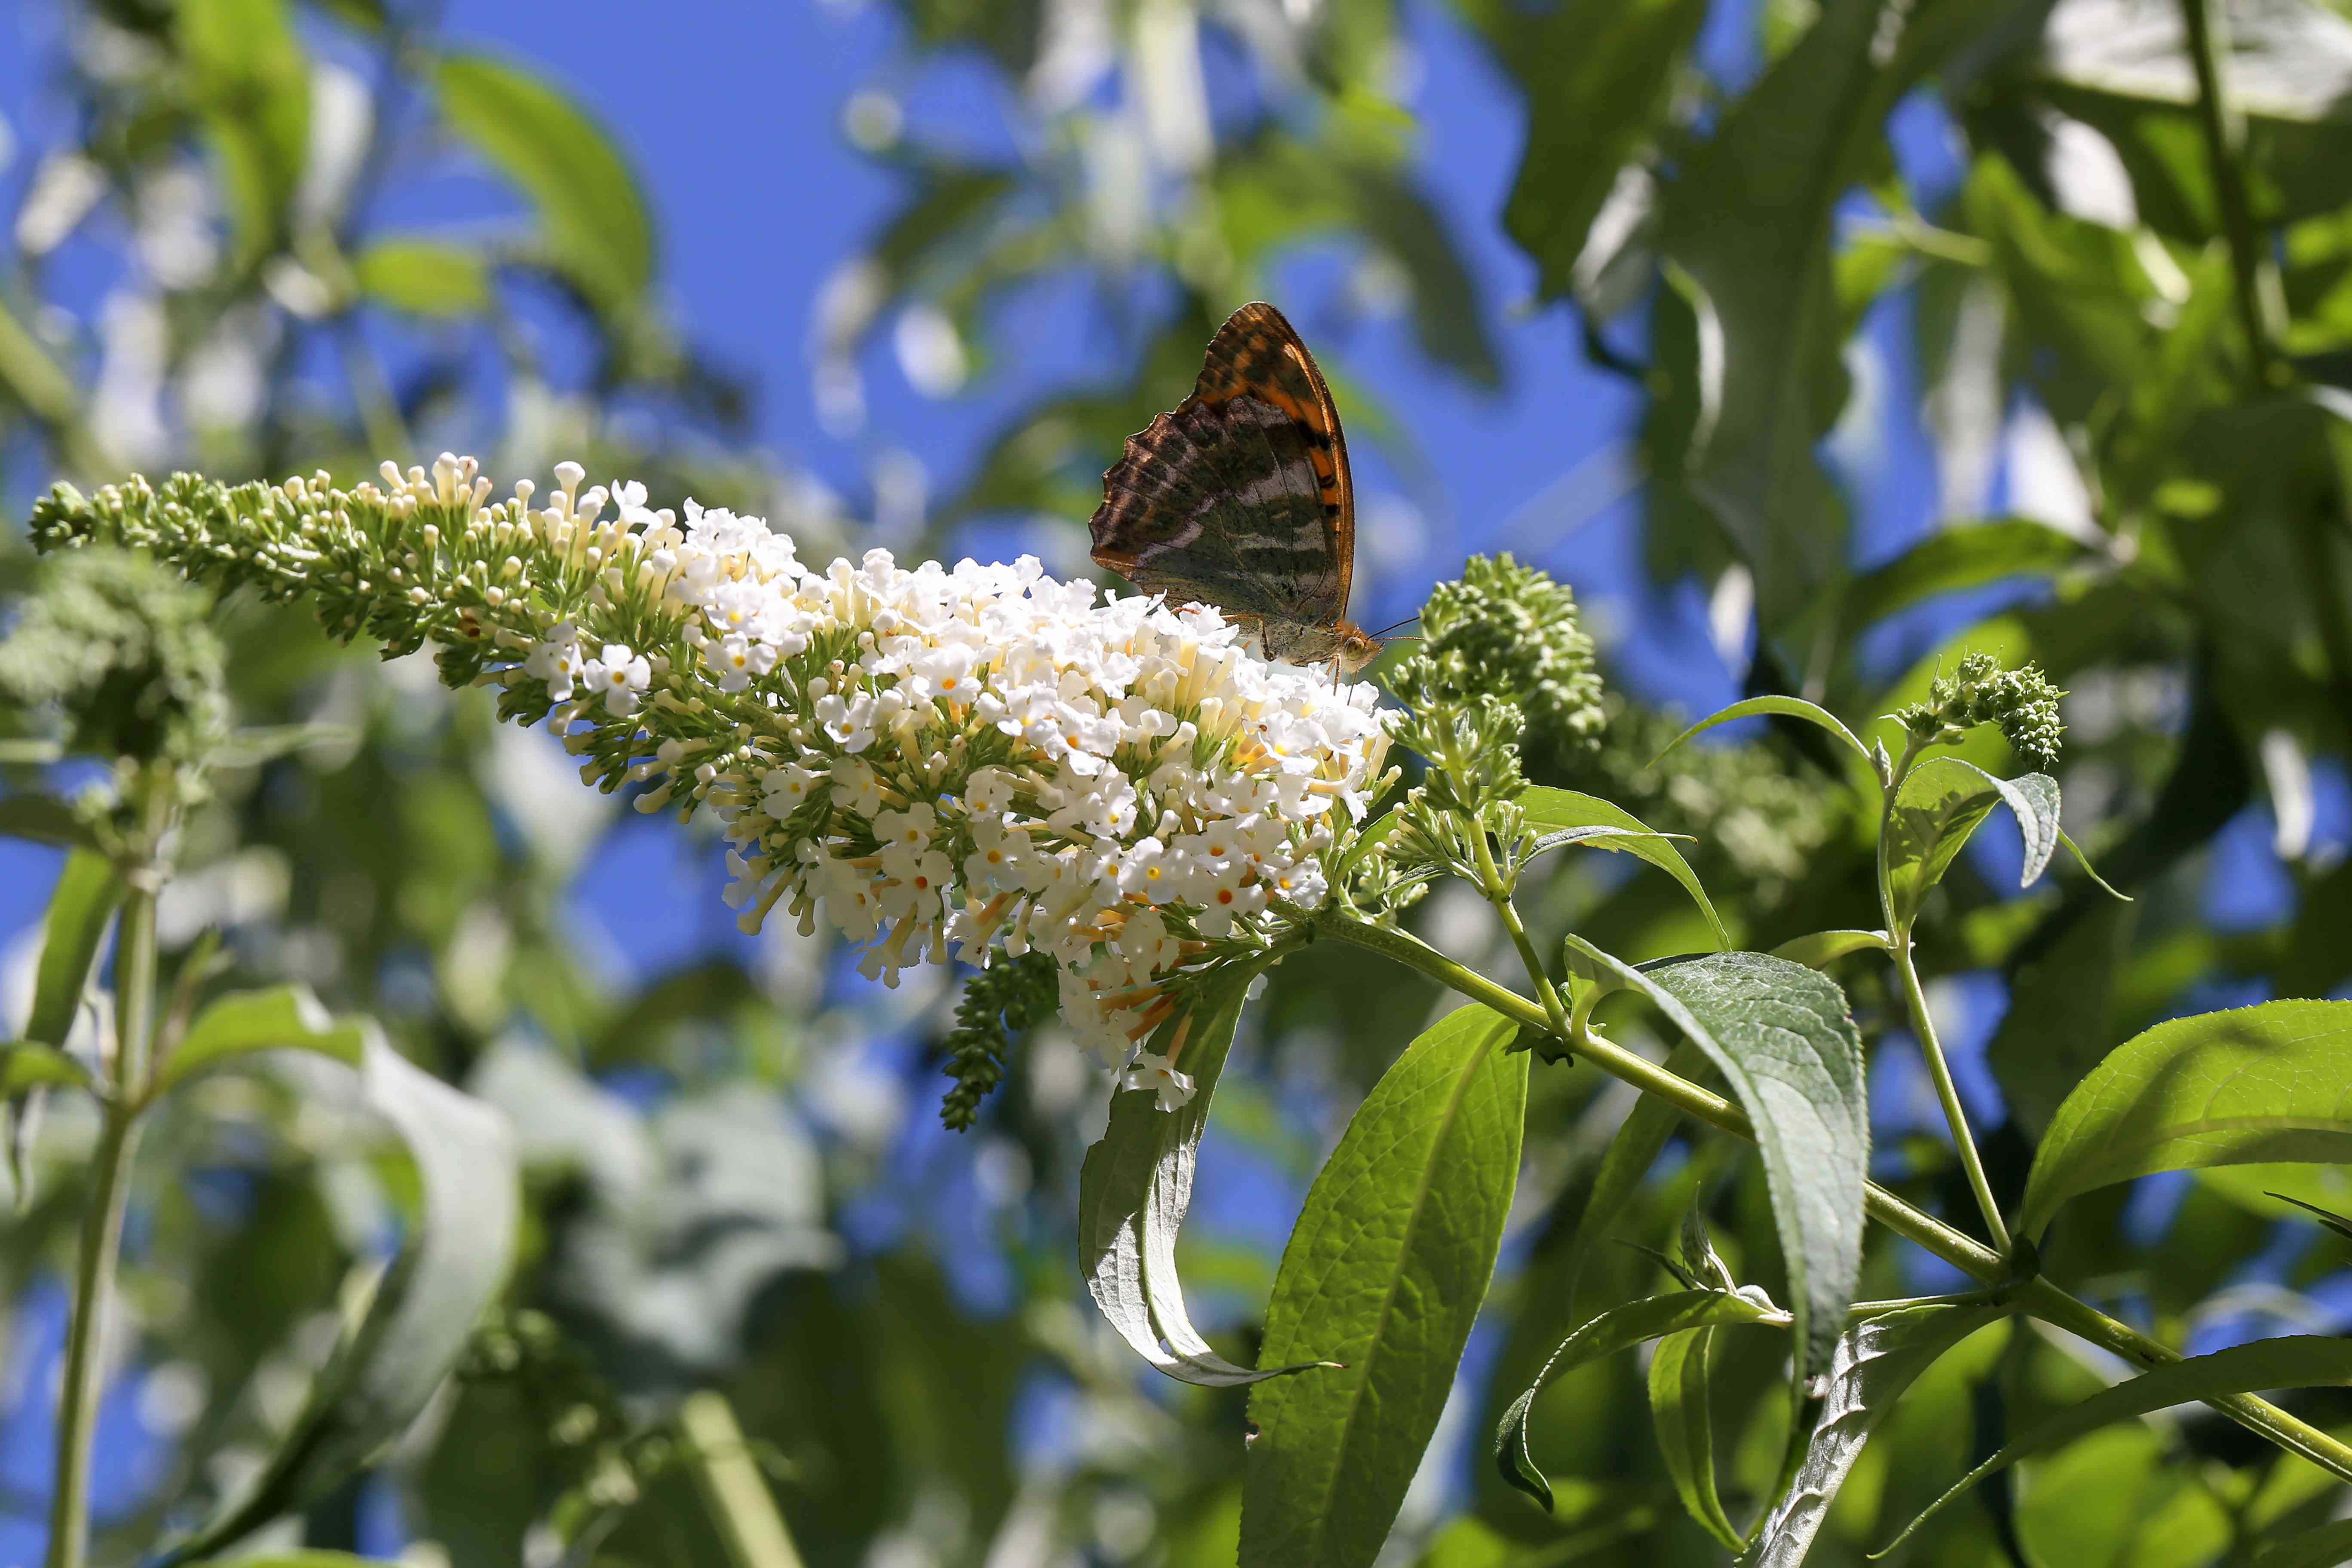 Buddleja is called a butterfly bush because many butterflies gather on the flowers